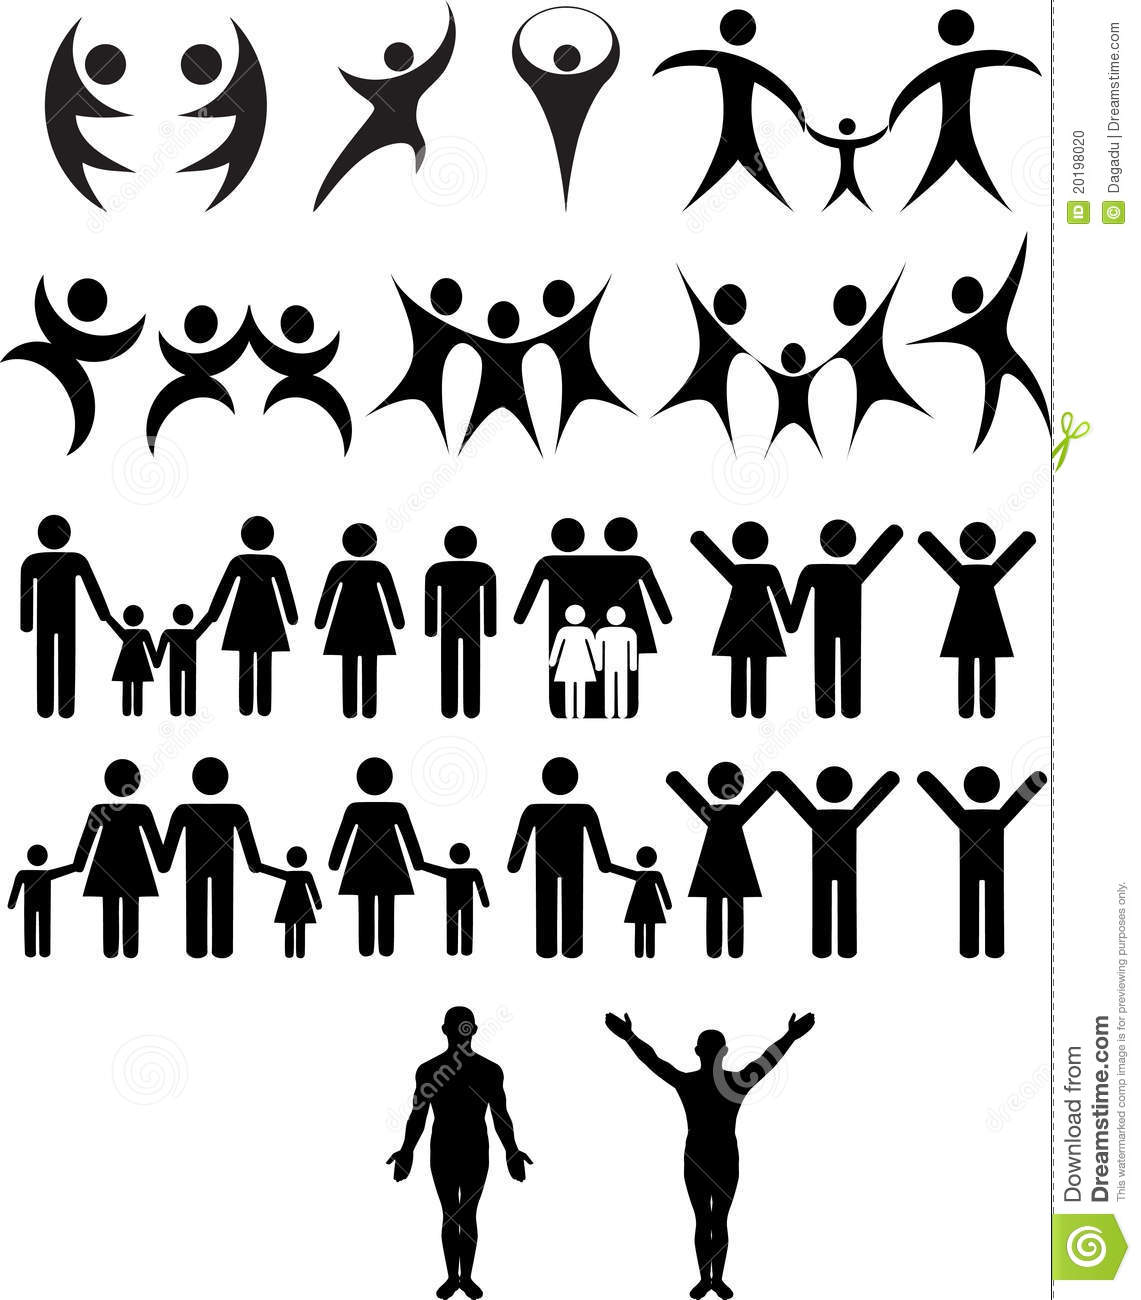 Stock Images Sales Icon Set Isolated White Background Image40849284 in addition Stock Photo Human Symbol Image20198020 likewise D C3 A9molition D C3 A9molir B C3 A2timent Ic C3 B4nes 20357974 moreover Royalty Free Stock Images Letter Border Image6096569 further Fragezeichen. on figure clipart